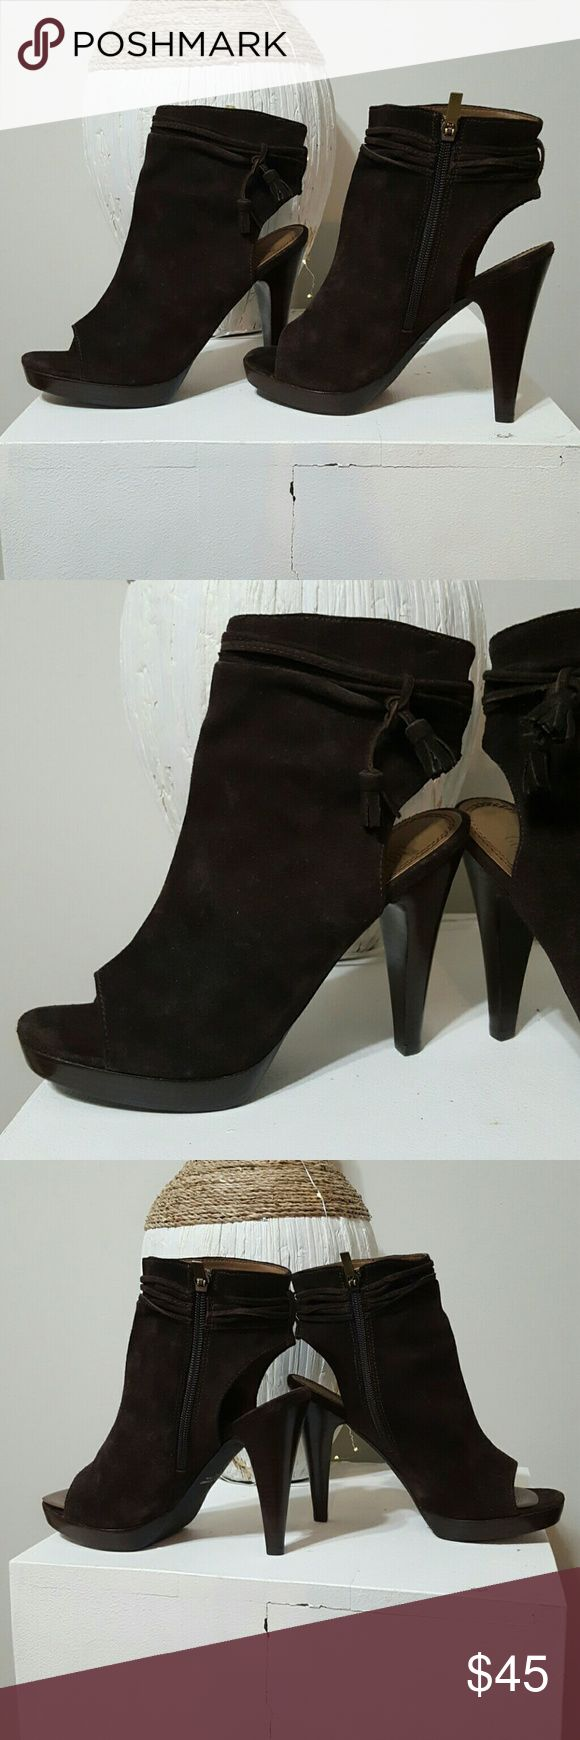 """COLIN STUART BROWN SUEDE OPEN TOE BOOTIES. COLIN STUART BROWN SUEDE OPEN TOE BOOTIES. Gorgeous shoe. Brown suede. Brown suede tassel top detail. Side zipper entry. 4"""" heel.  Perfect condition. Barely worn!! Colin Stuart Shoes Ankle Boots & Booties"""